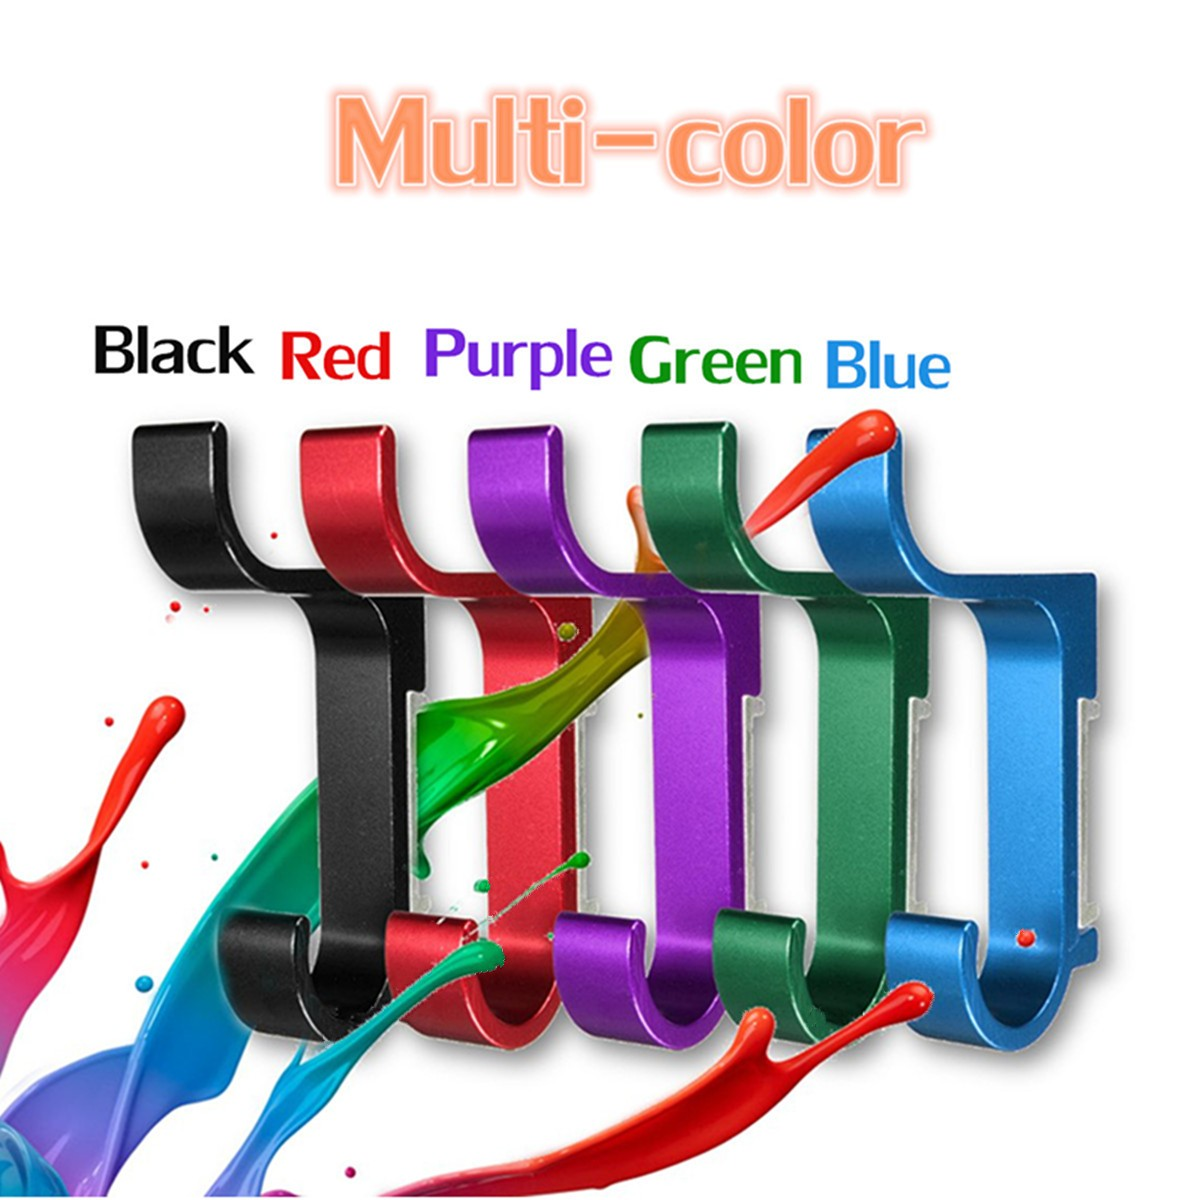 Double Layers Colorful Space Alumimum Wall Mounted Clothes Towel Robe Hook Sundries Hanger